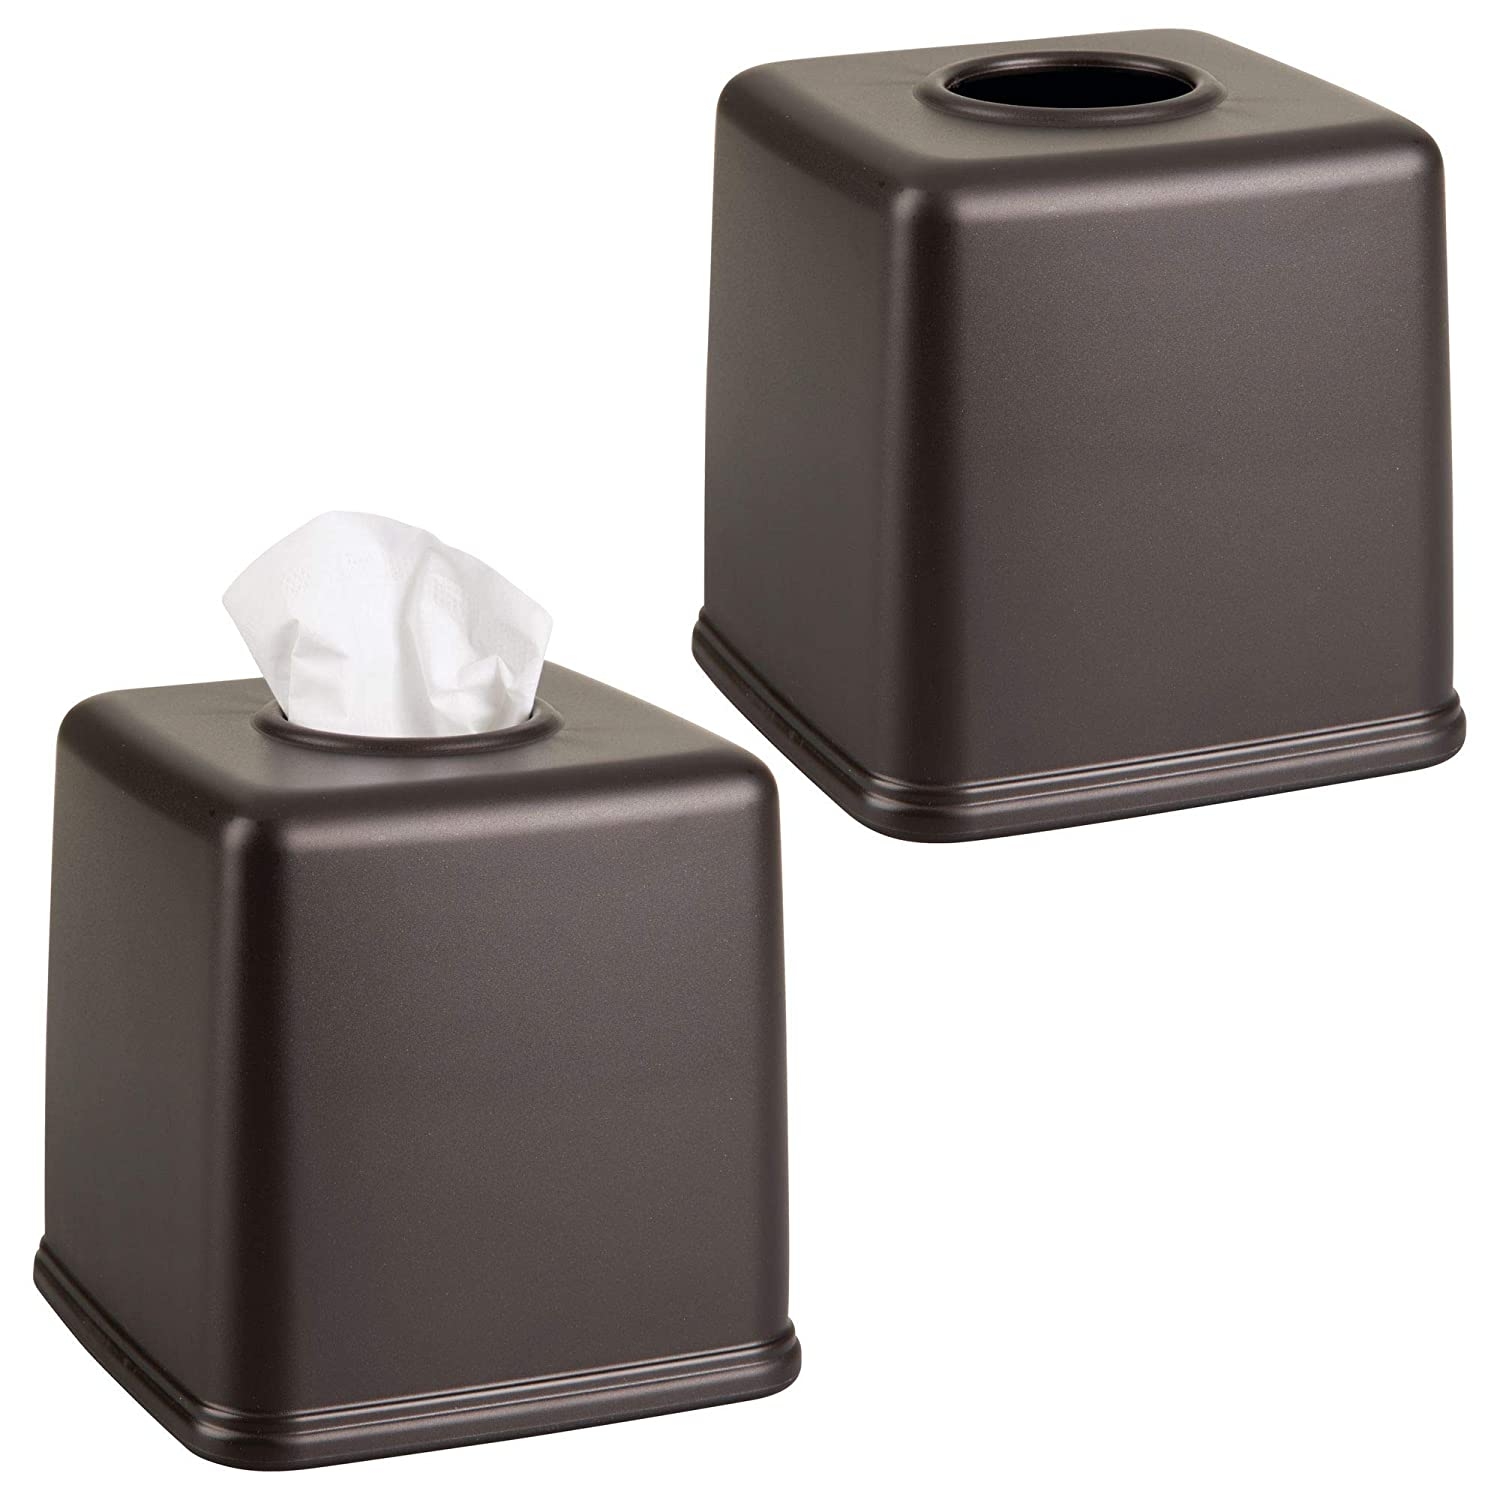 mDesign Square Facial Tissue Box Cover Holder for Bathroom Vanity Countertops, Bedroom Dressers, Night Stands, Desks and Tables - Pack of 2, Bronze MetroDecor